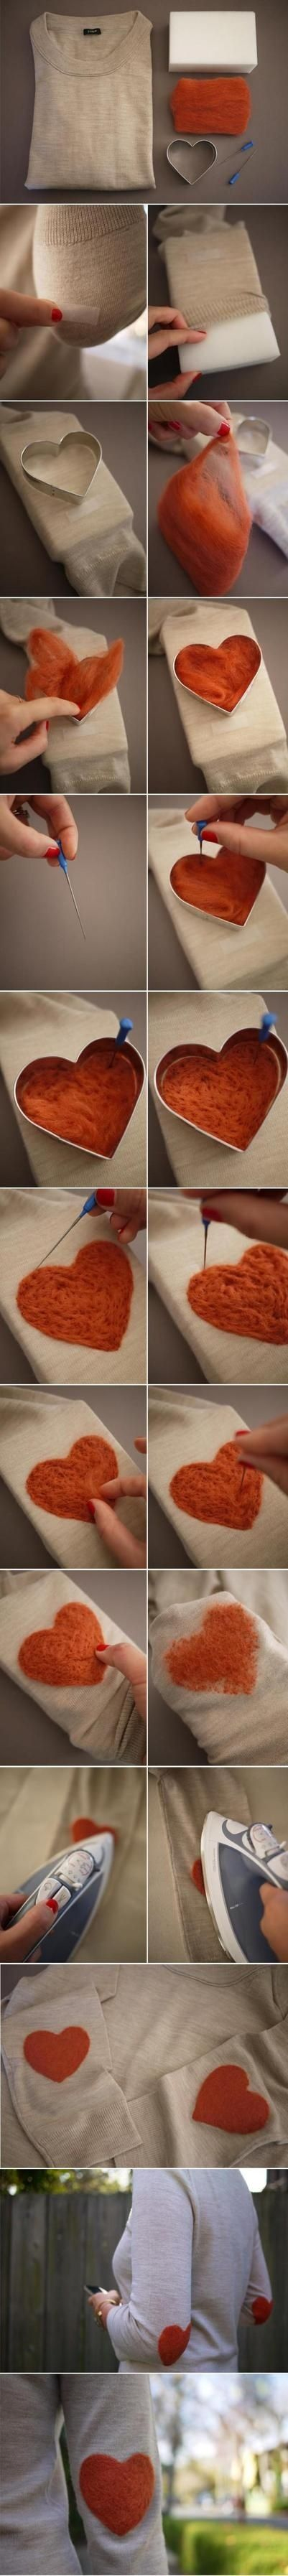 Gonna use this technique on knit leggings